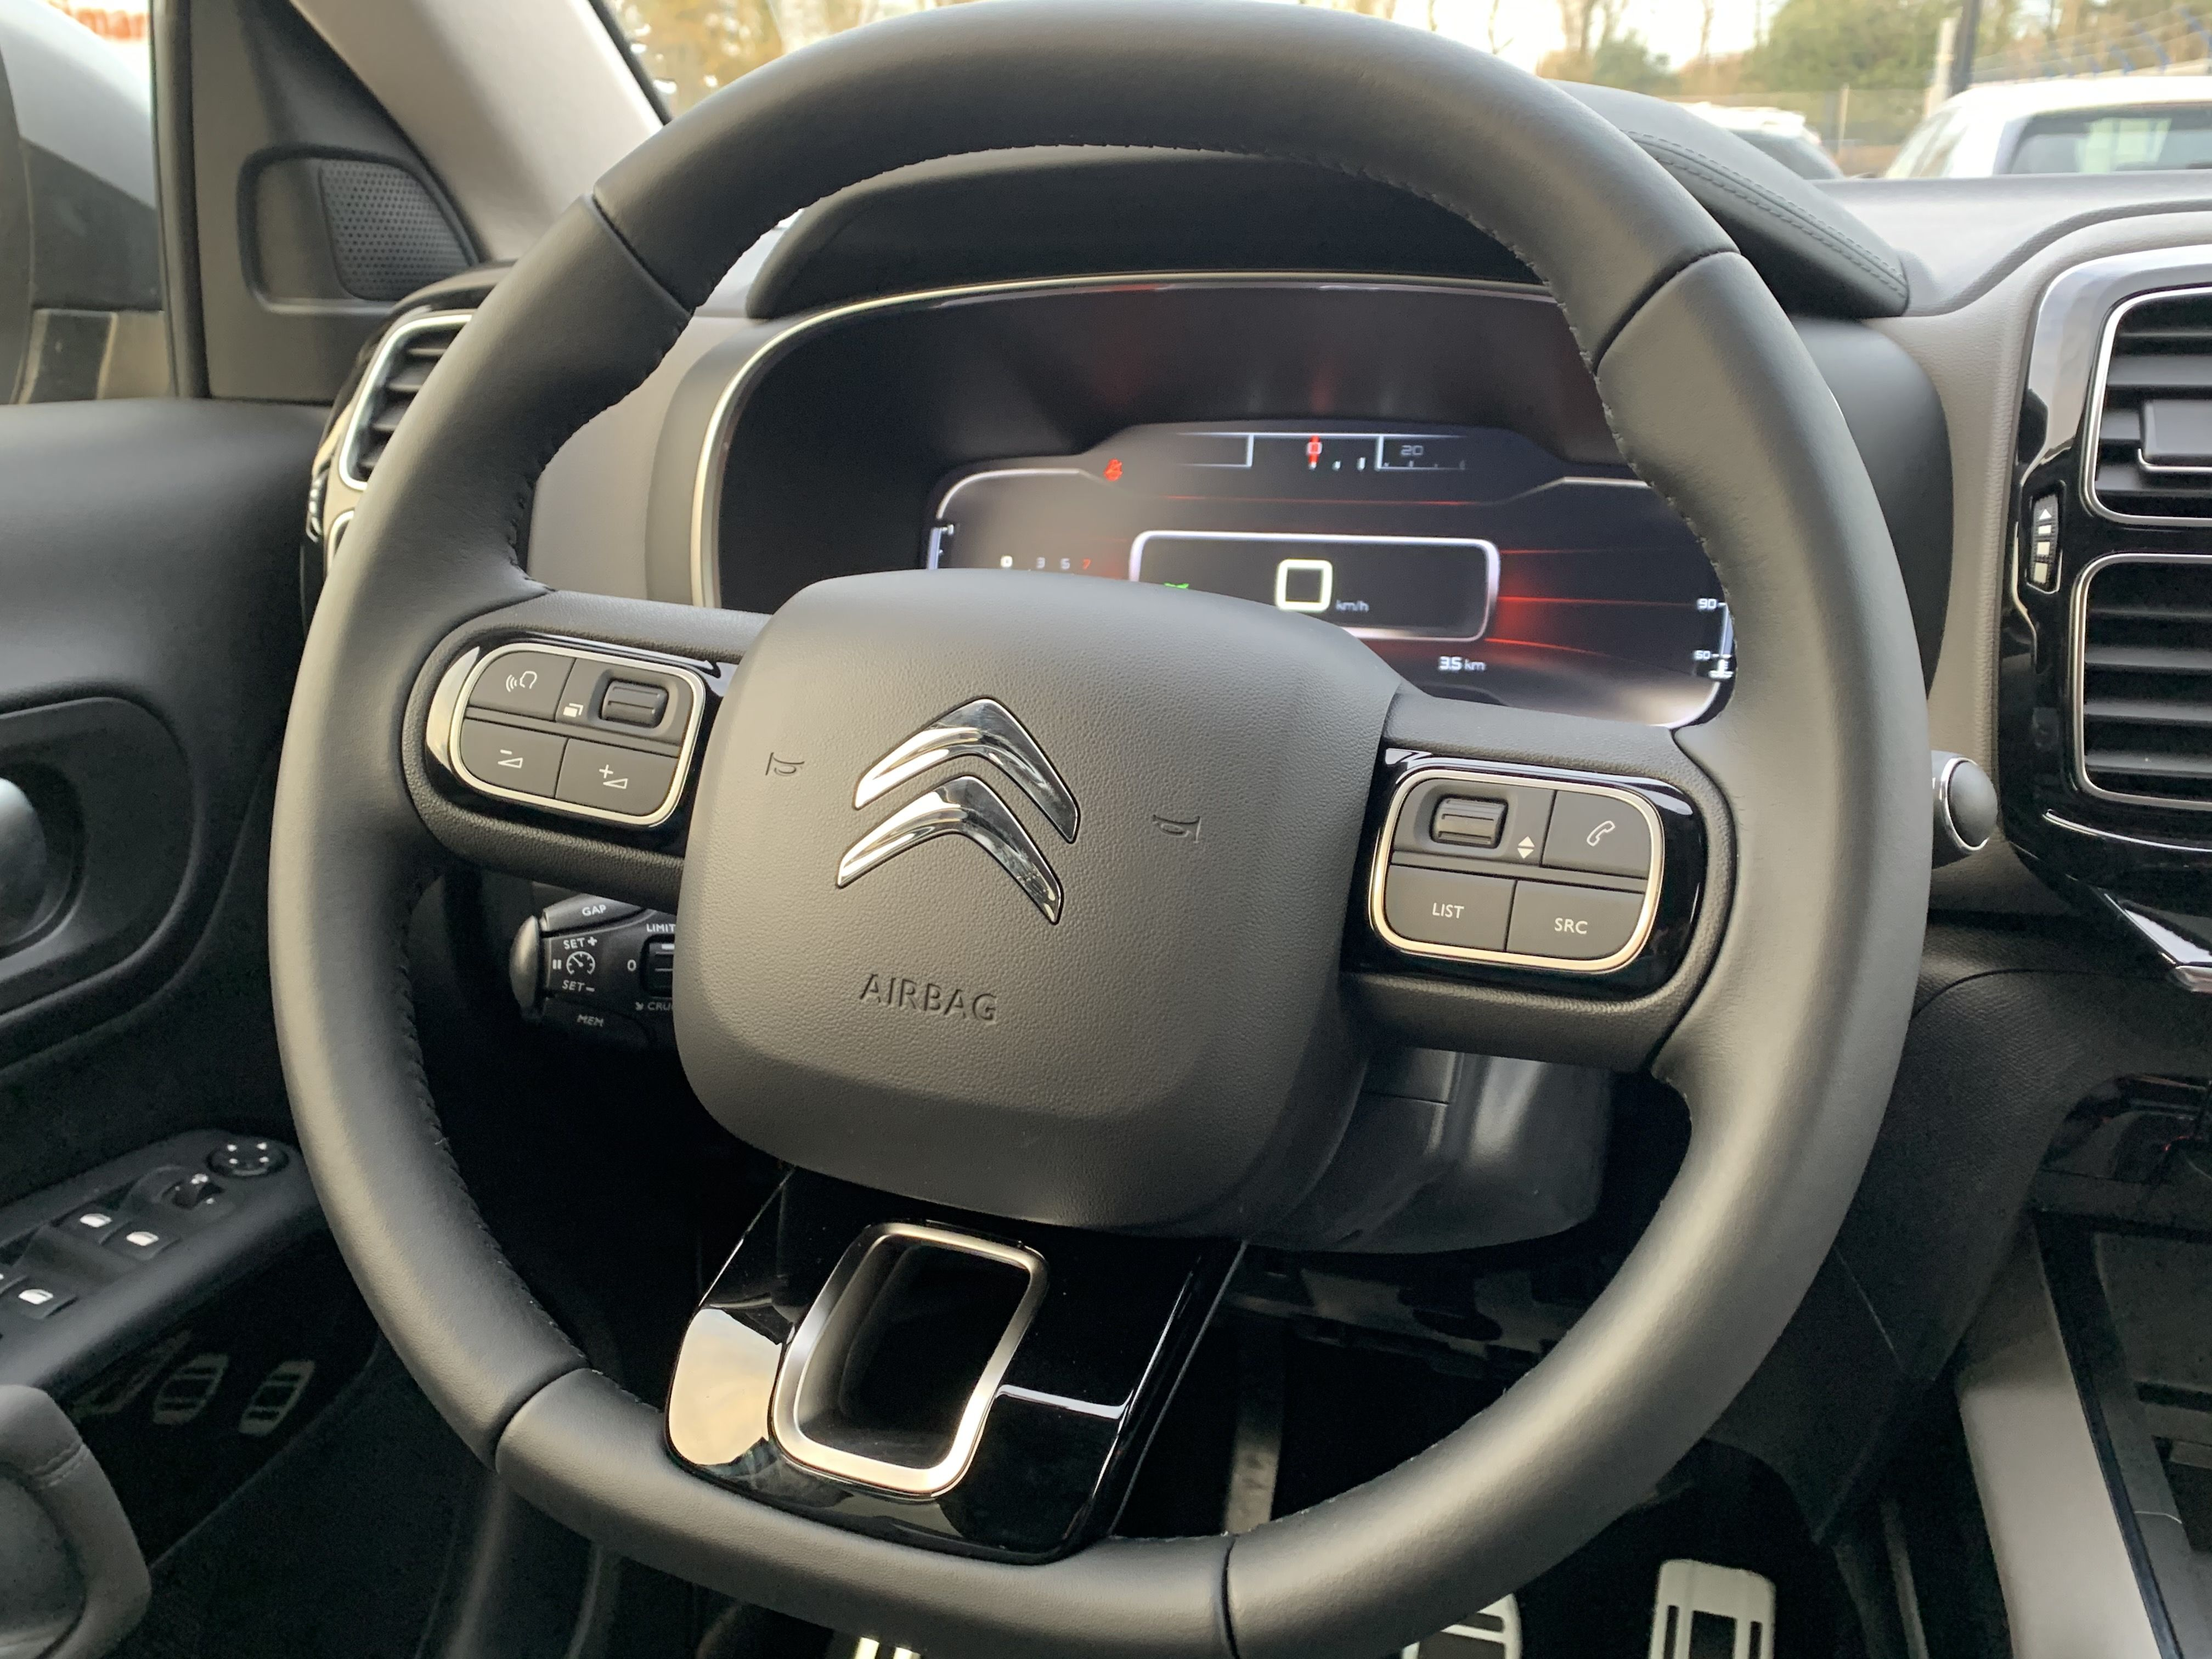 CITROEN C5 AIRCROSS 1.5 BLUEHDI 130CH S&S BVM6 SHINE occasion